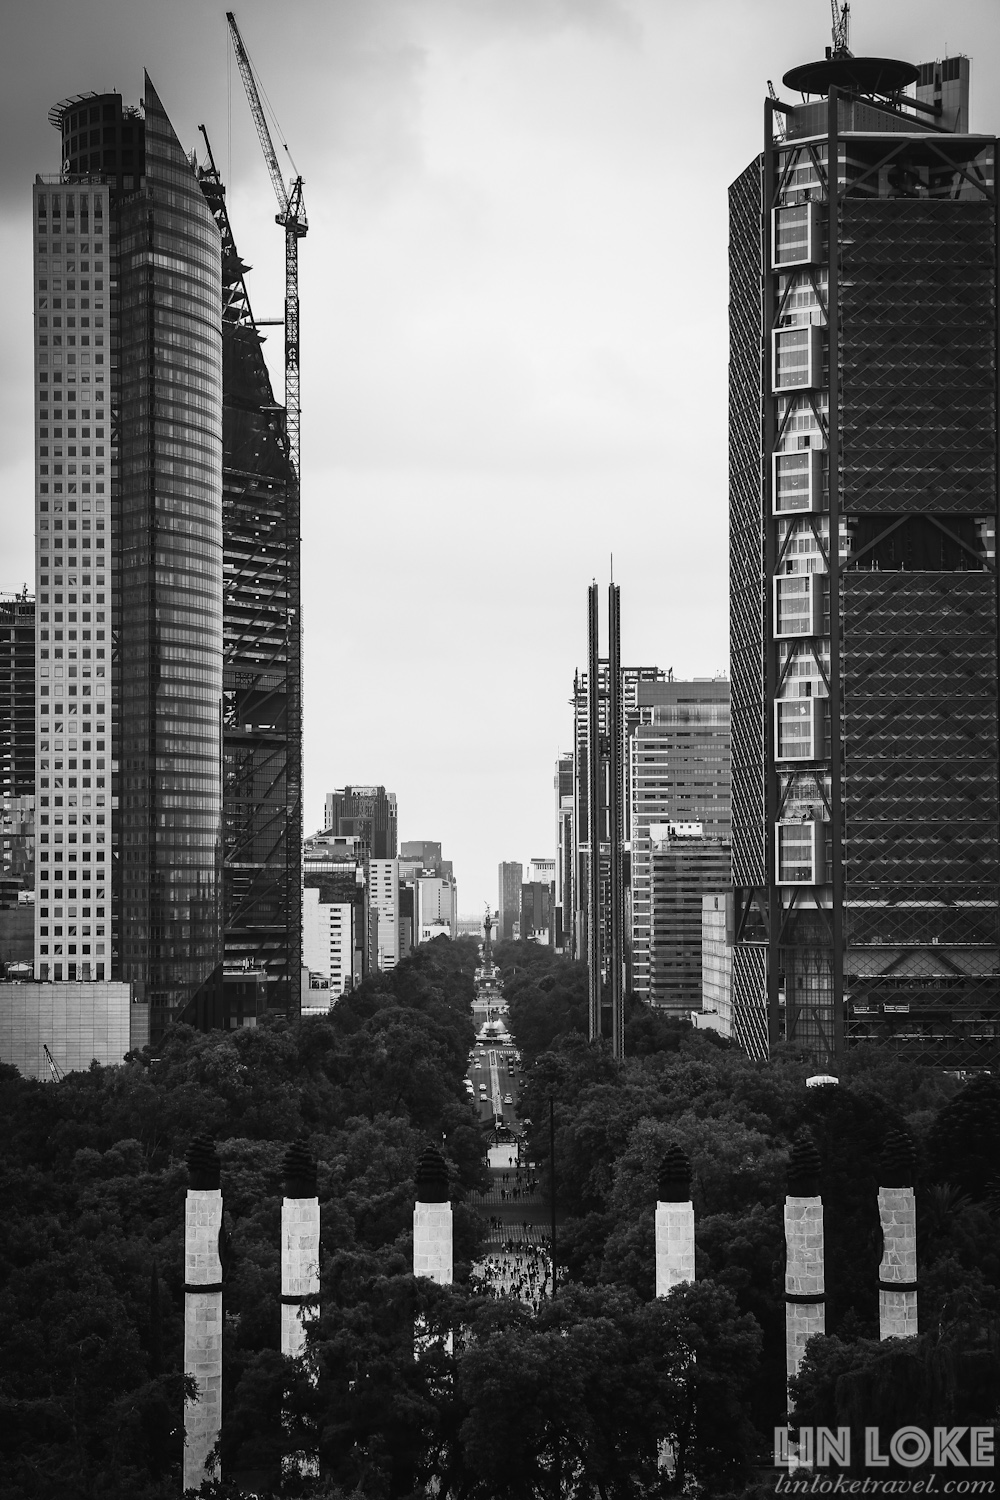 The view of Paseo de la Reforma from the top of Chapultepec hill